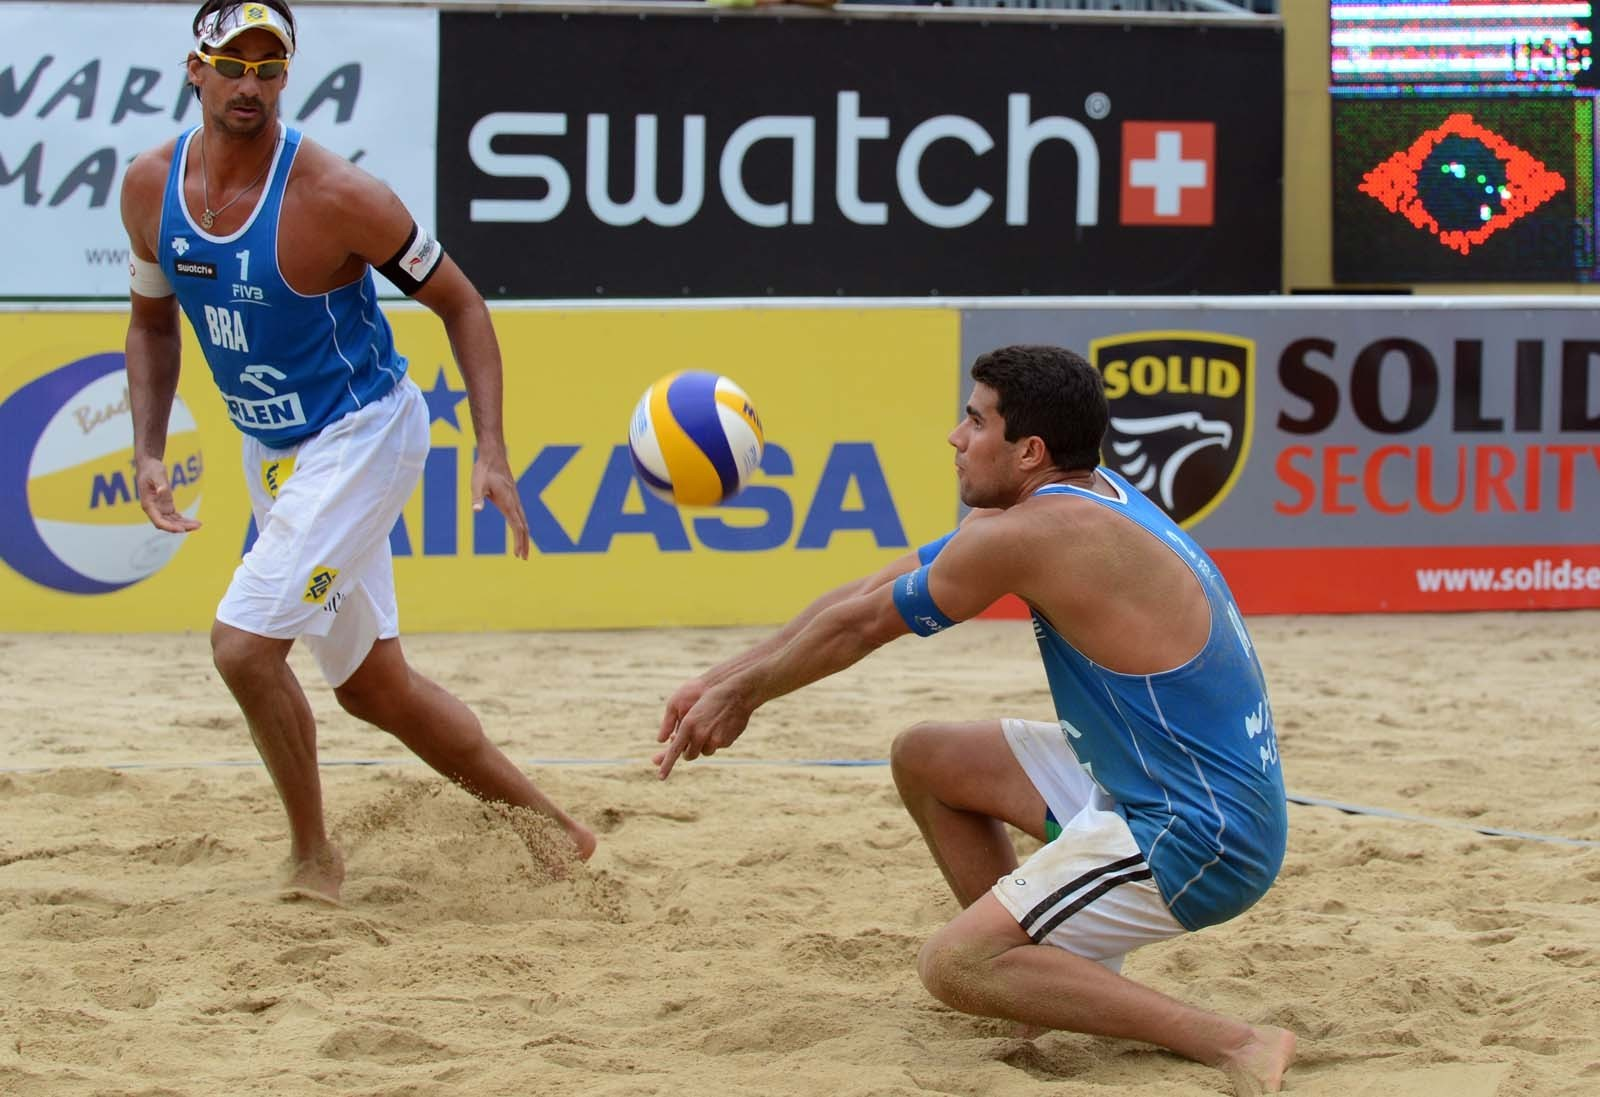 Vitor and Ricardo played together in a World Tour event in Poland in 2012 (Photocredit: FIVB)